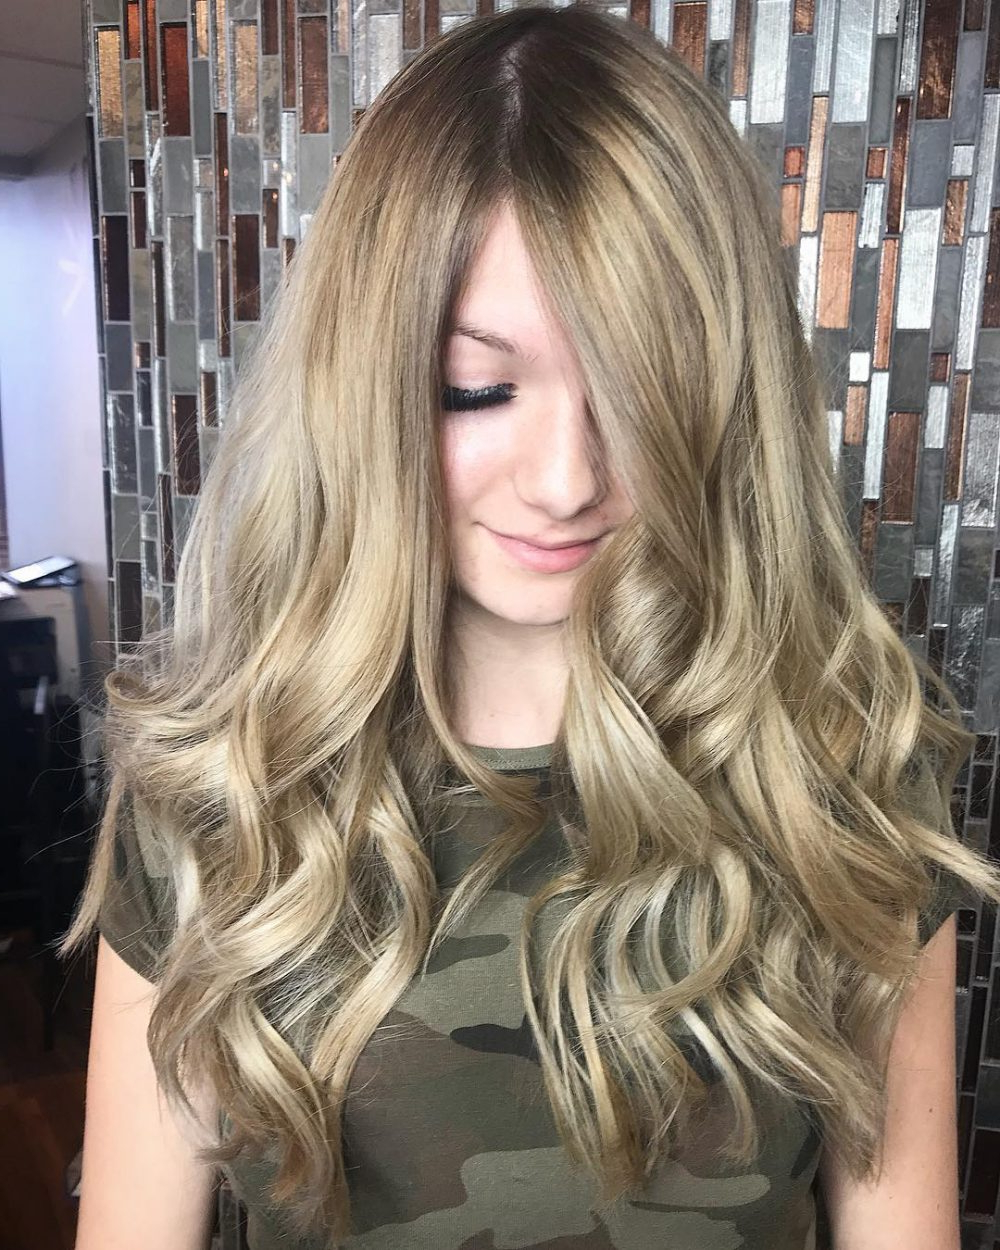 2019 Shiny Tousled Curls Hairstyles With Regard To 24 Long Wavy Hair Ideas That Are Freaking Hot In  (View 1 of 20)